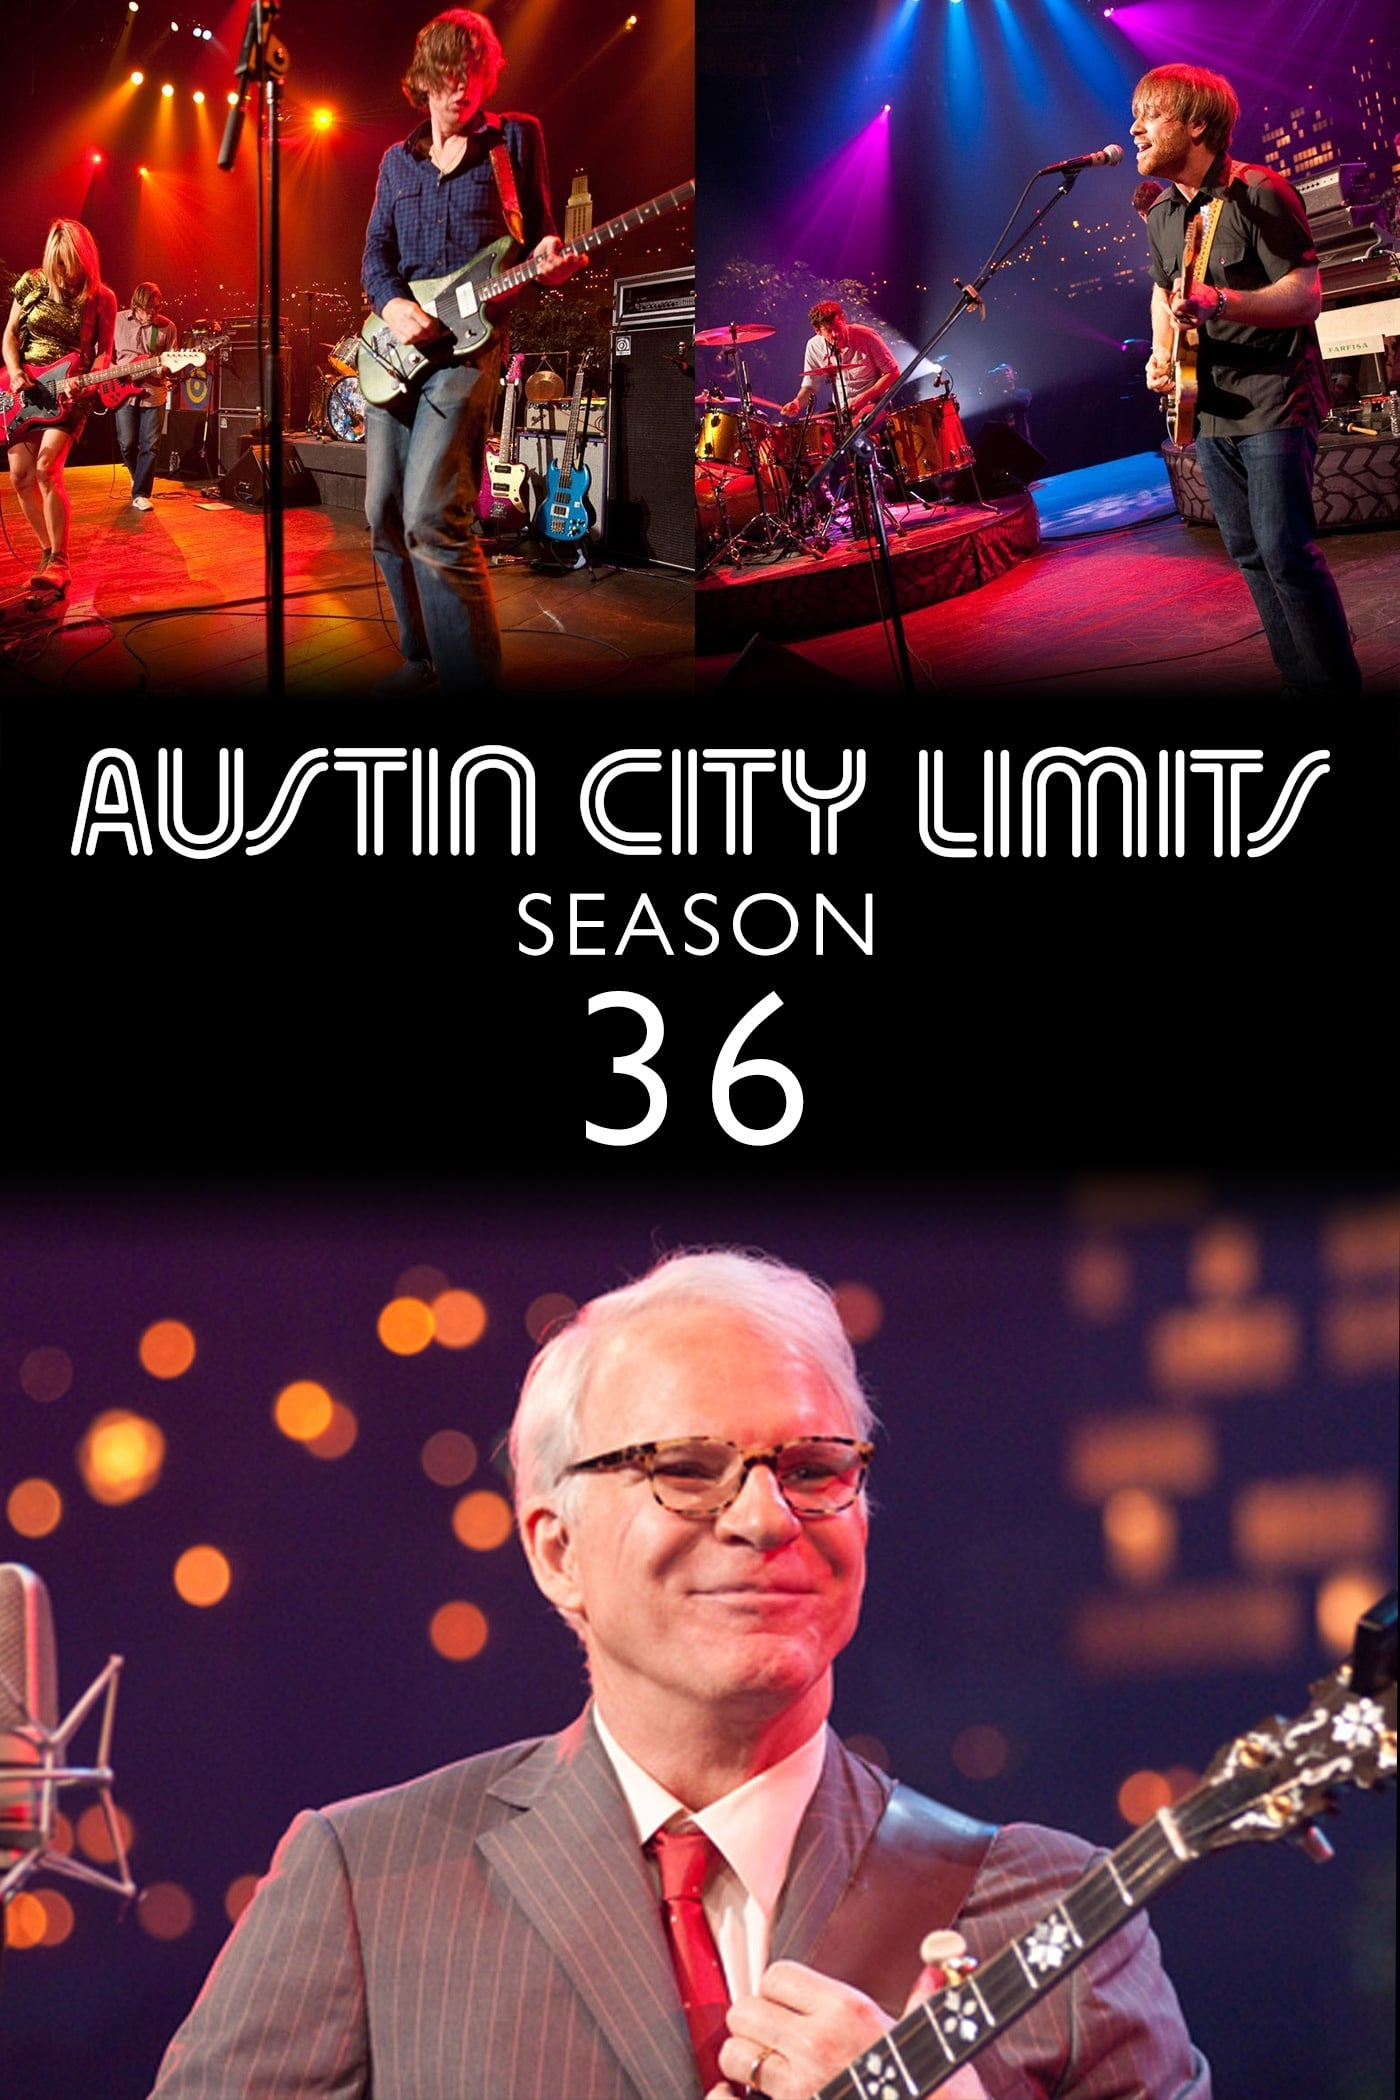 Austin City Limits Season 36